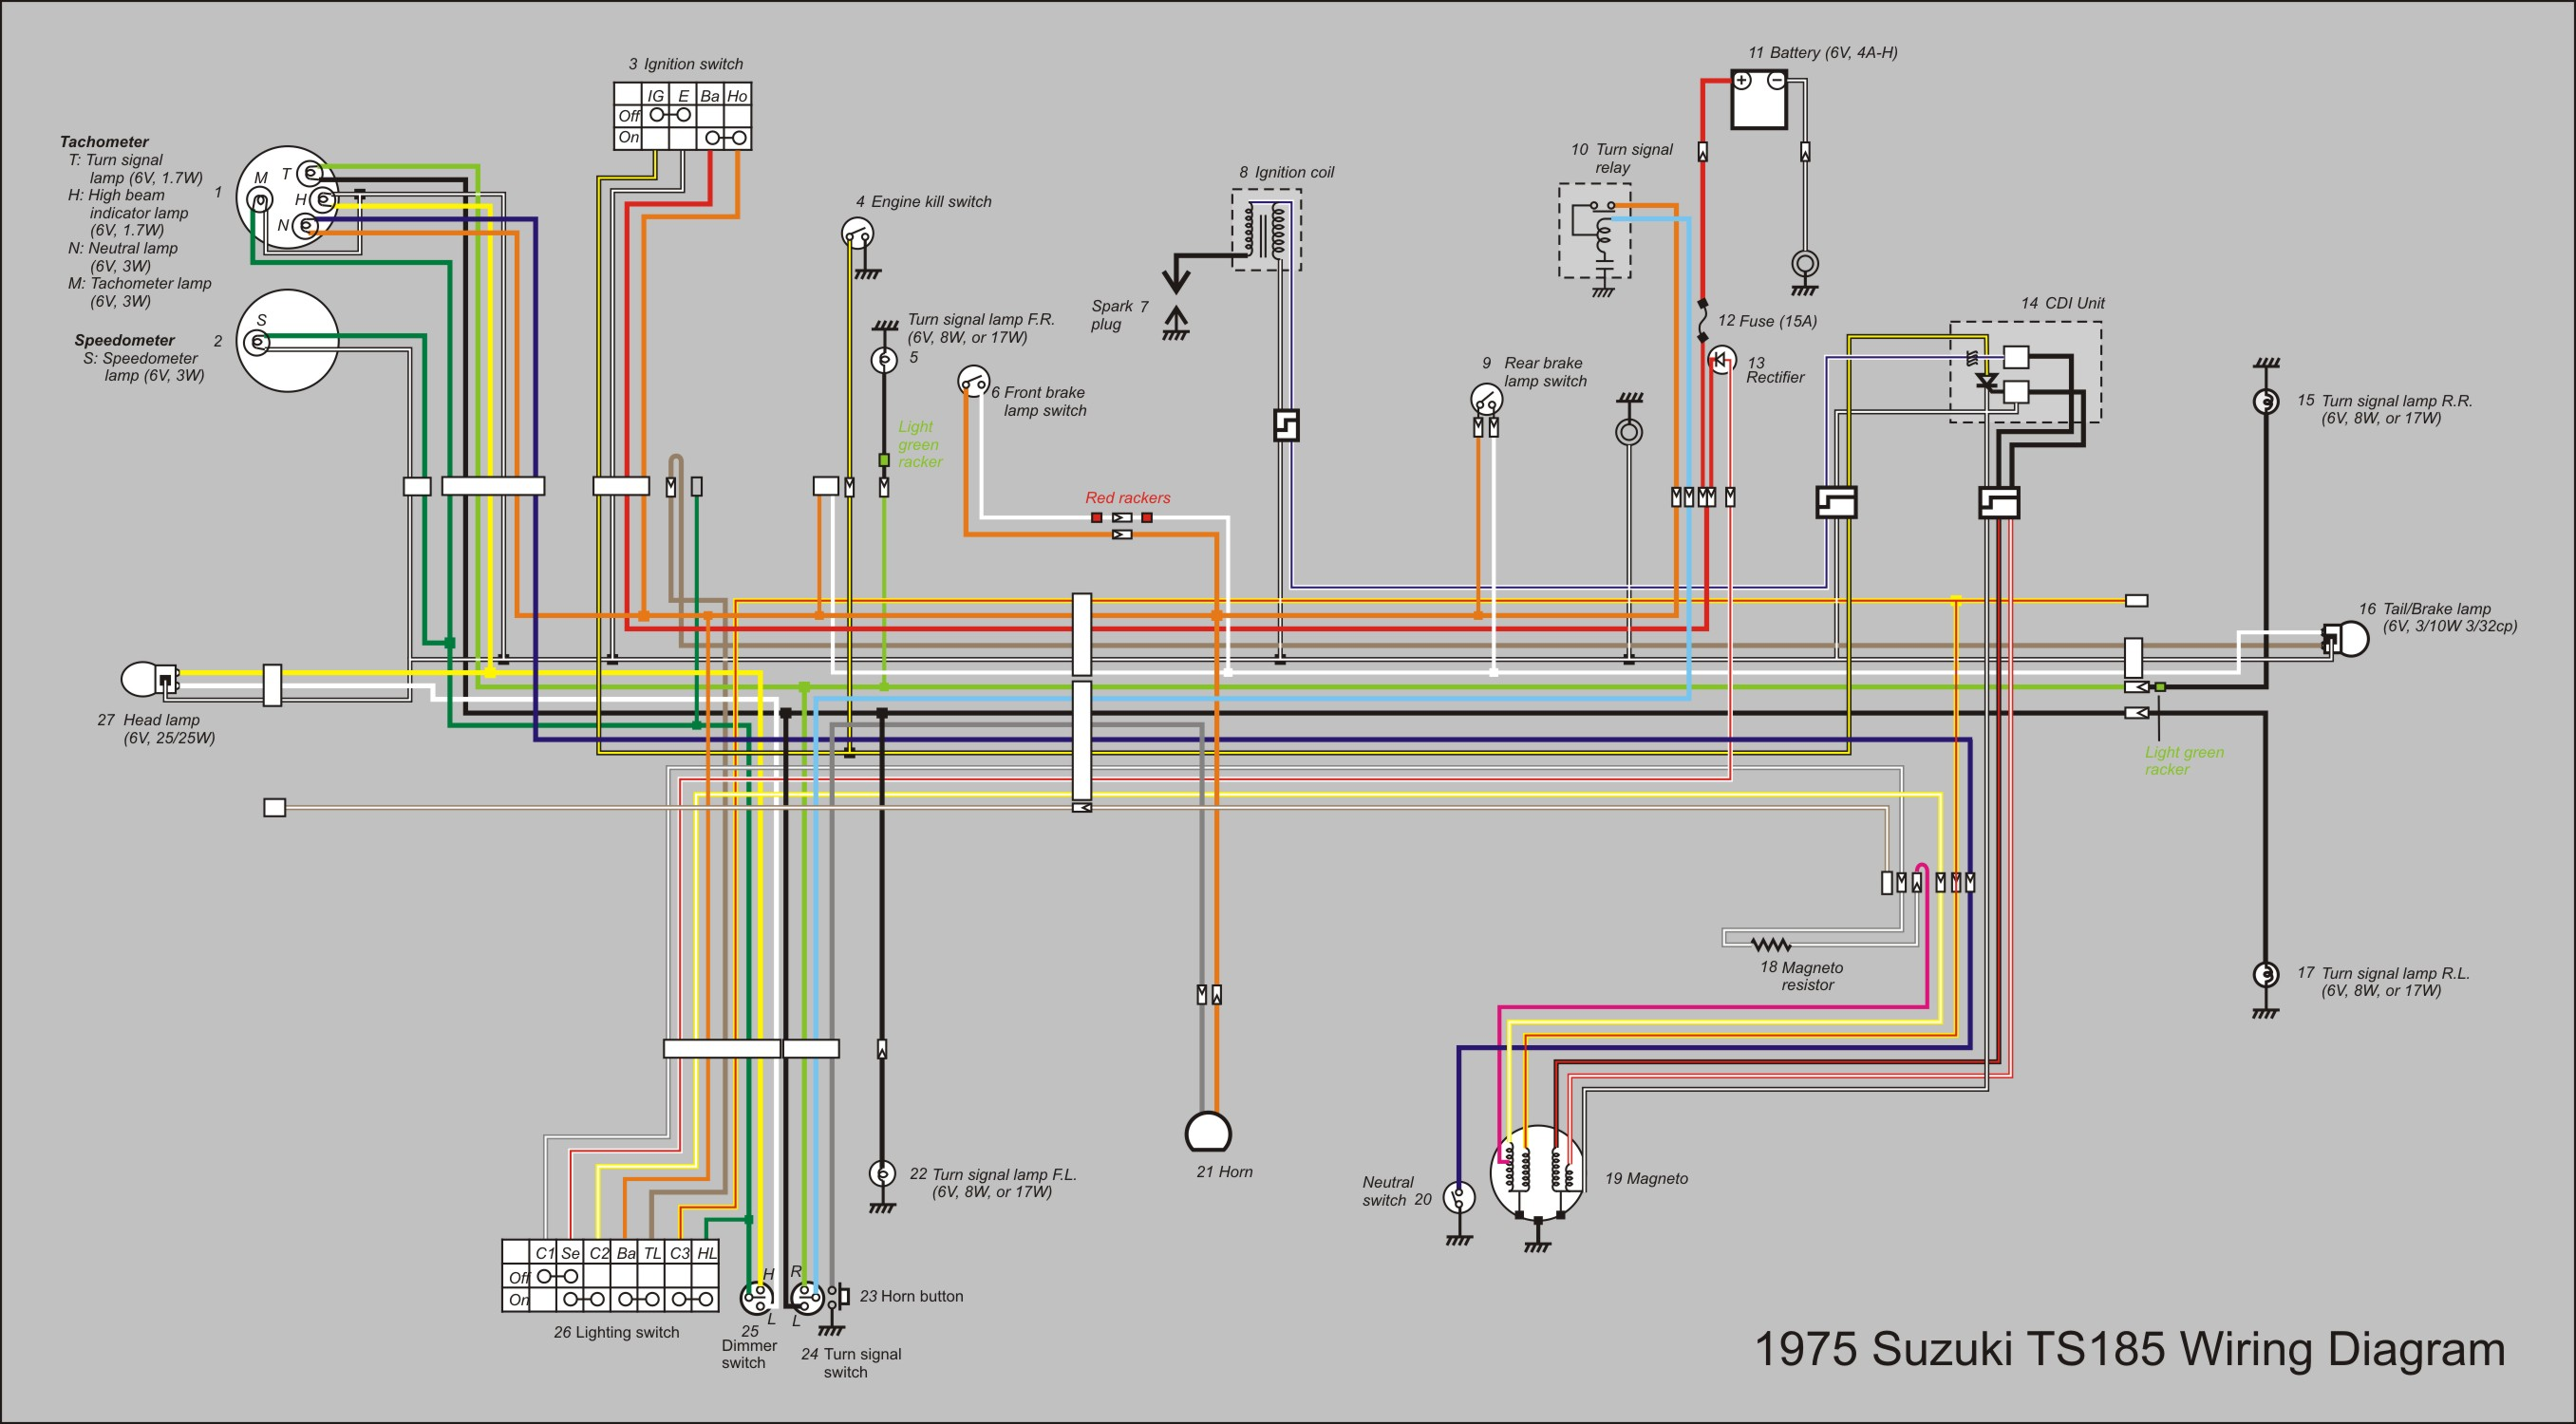 Filets185 Wiring Diagram New Wikimedia Commons For Pickups